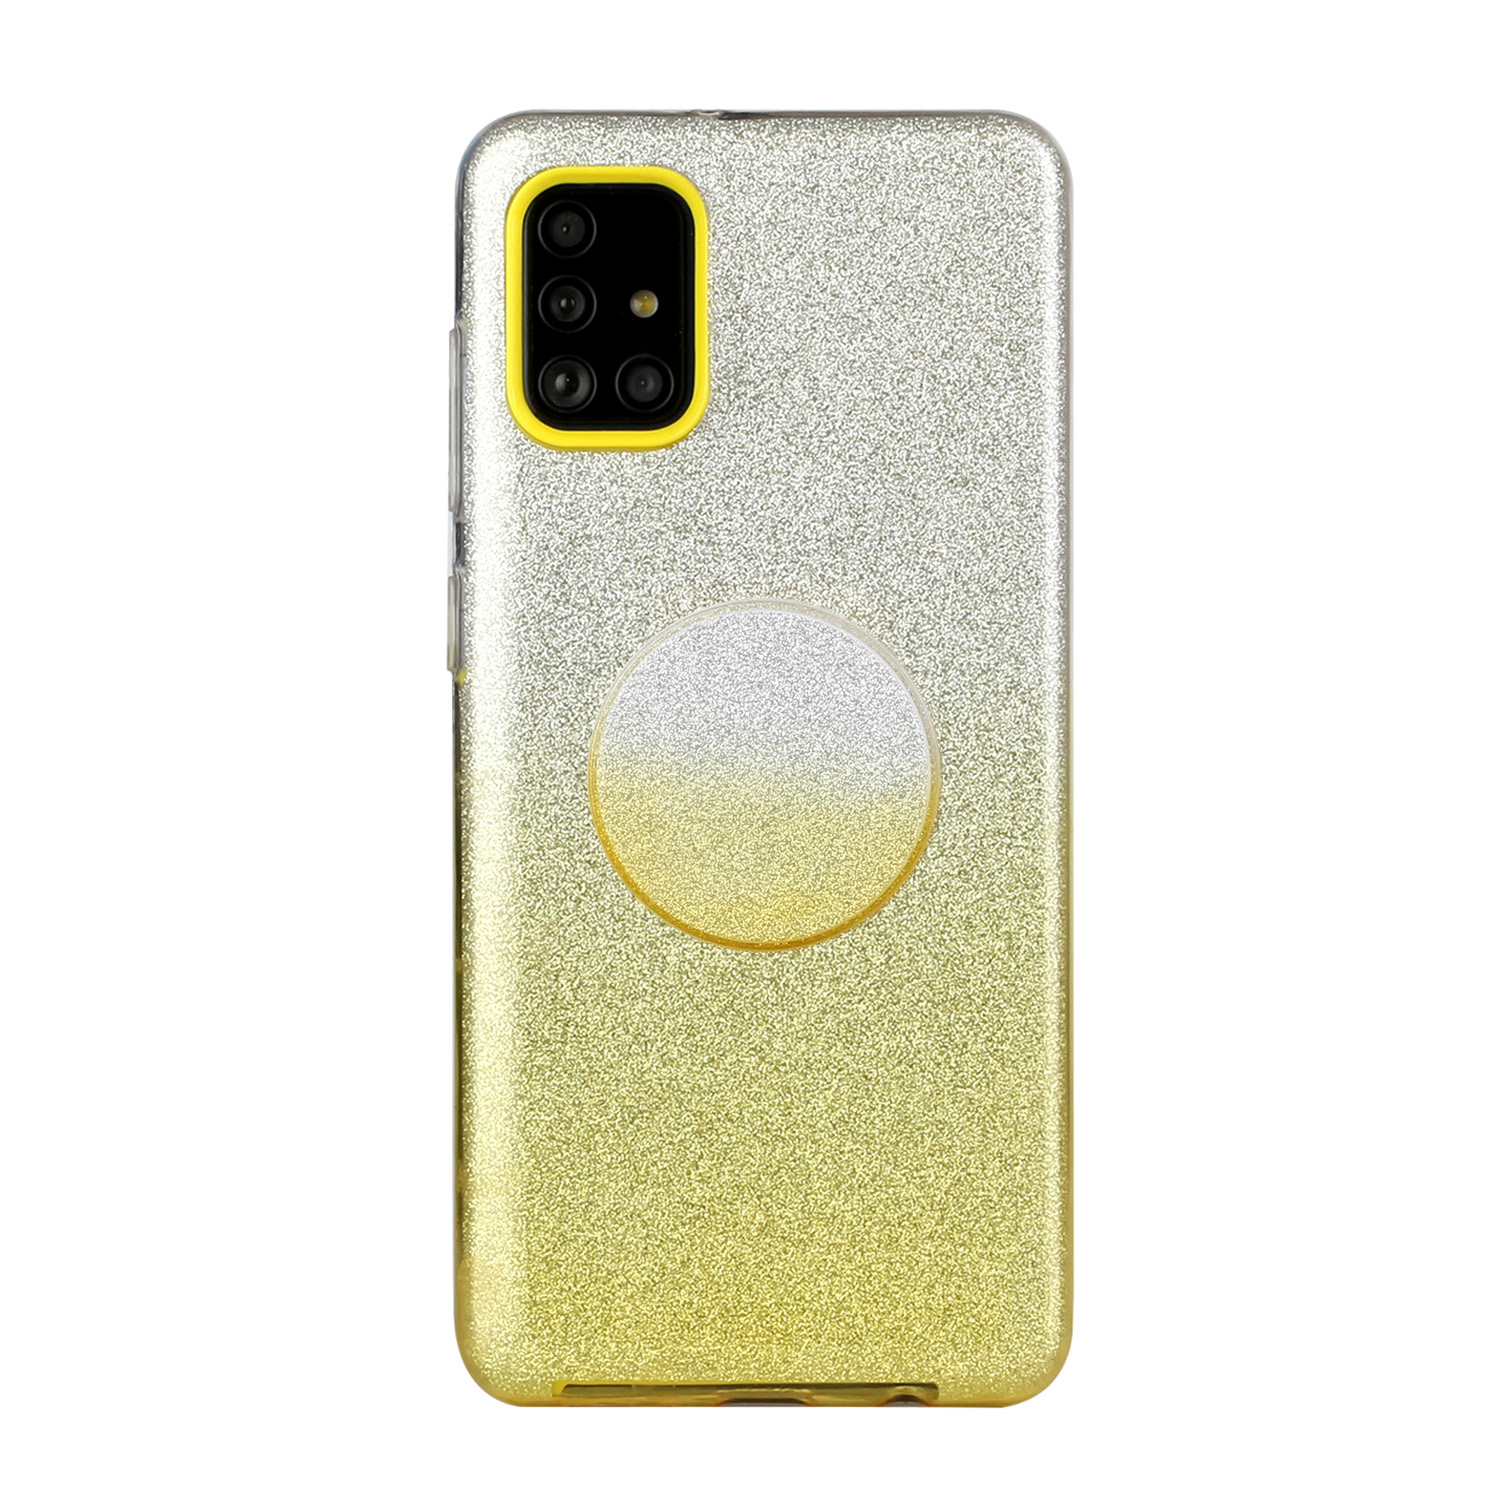 For Samsung A01/A11 European version/A31/A71 Phone Case Gradient Color Glitter Powder Phone Cover with Airbag Bracket yellow